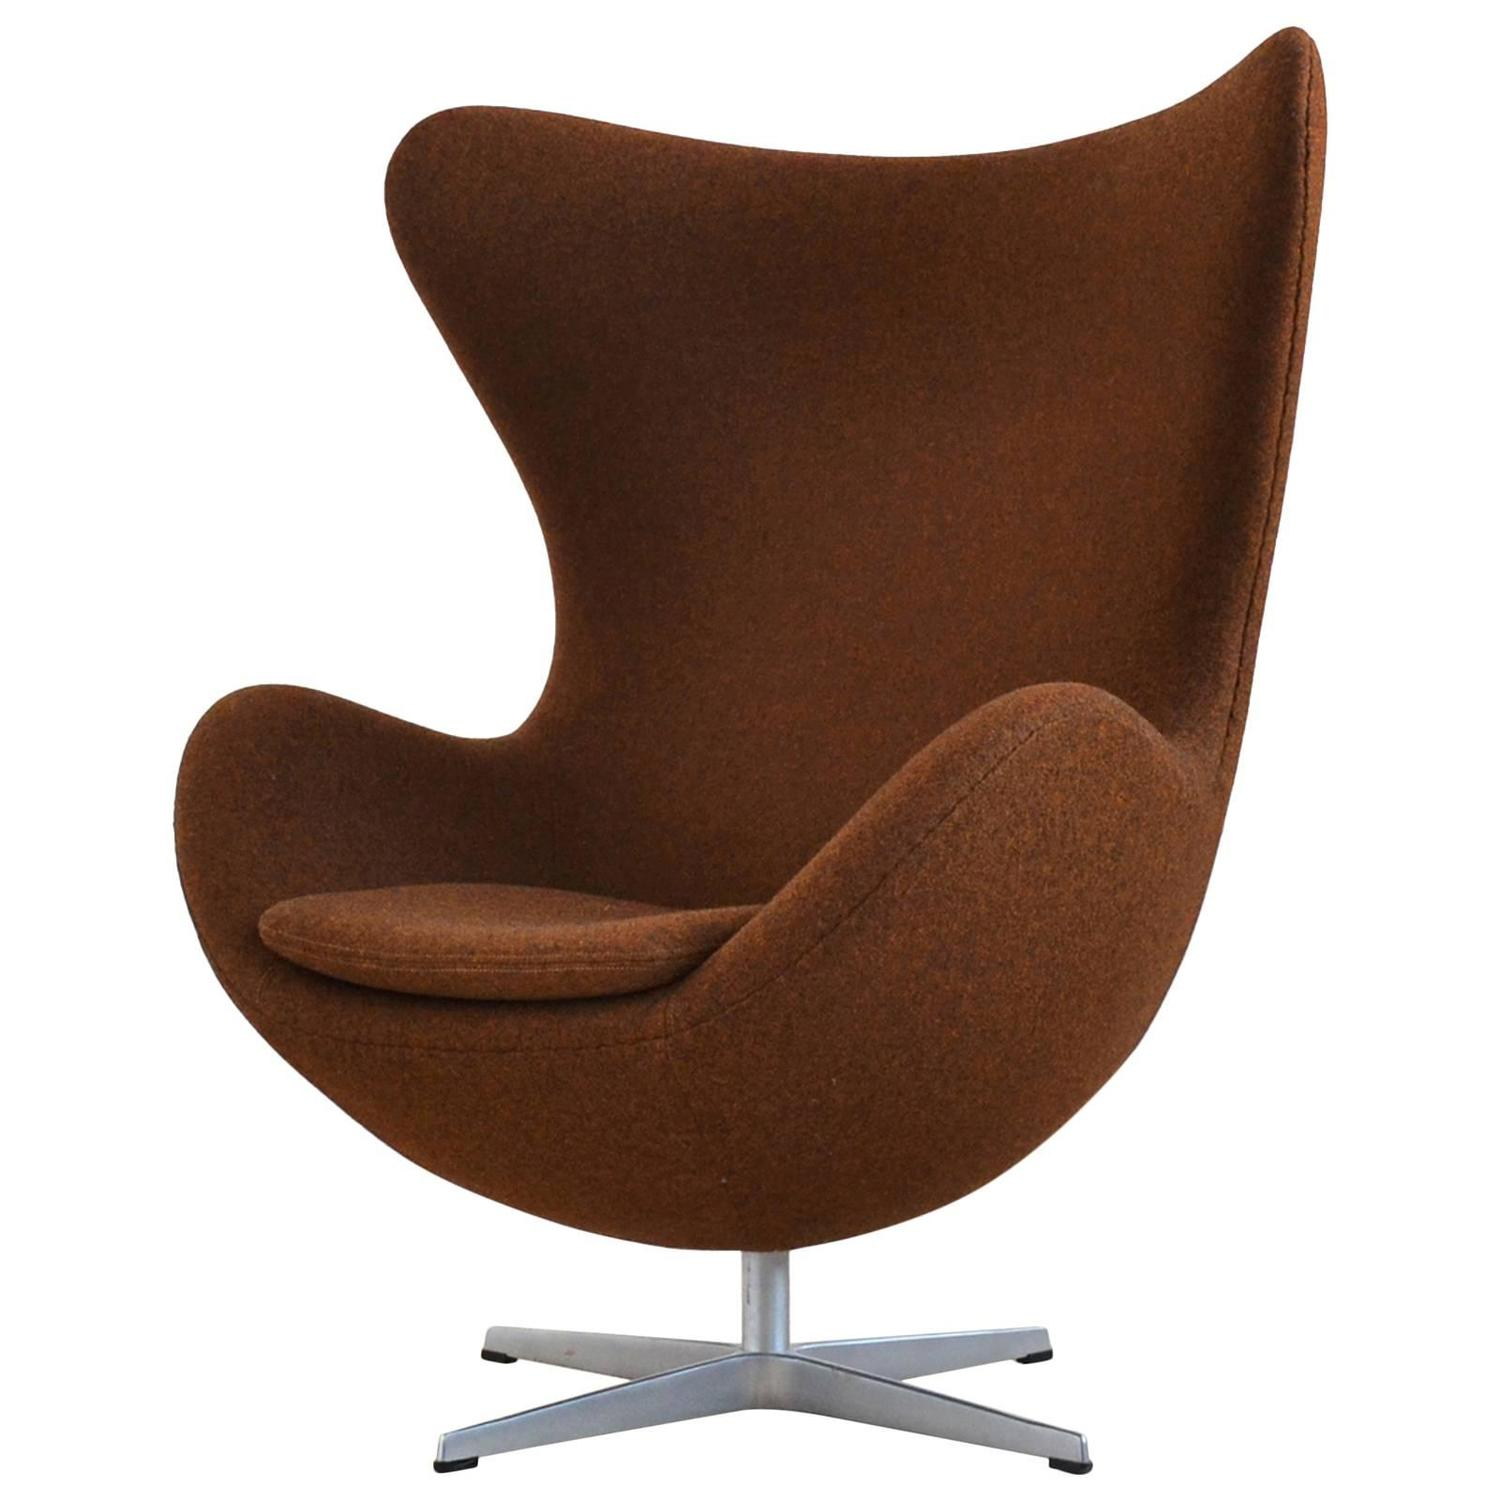 This arne jacobsen swan chair in cognac leather by fritz hansen is no - Arne Jacobsen Egg Chair By Fritz Hansen In Divina Melange